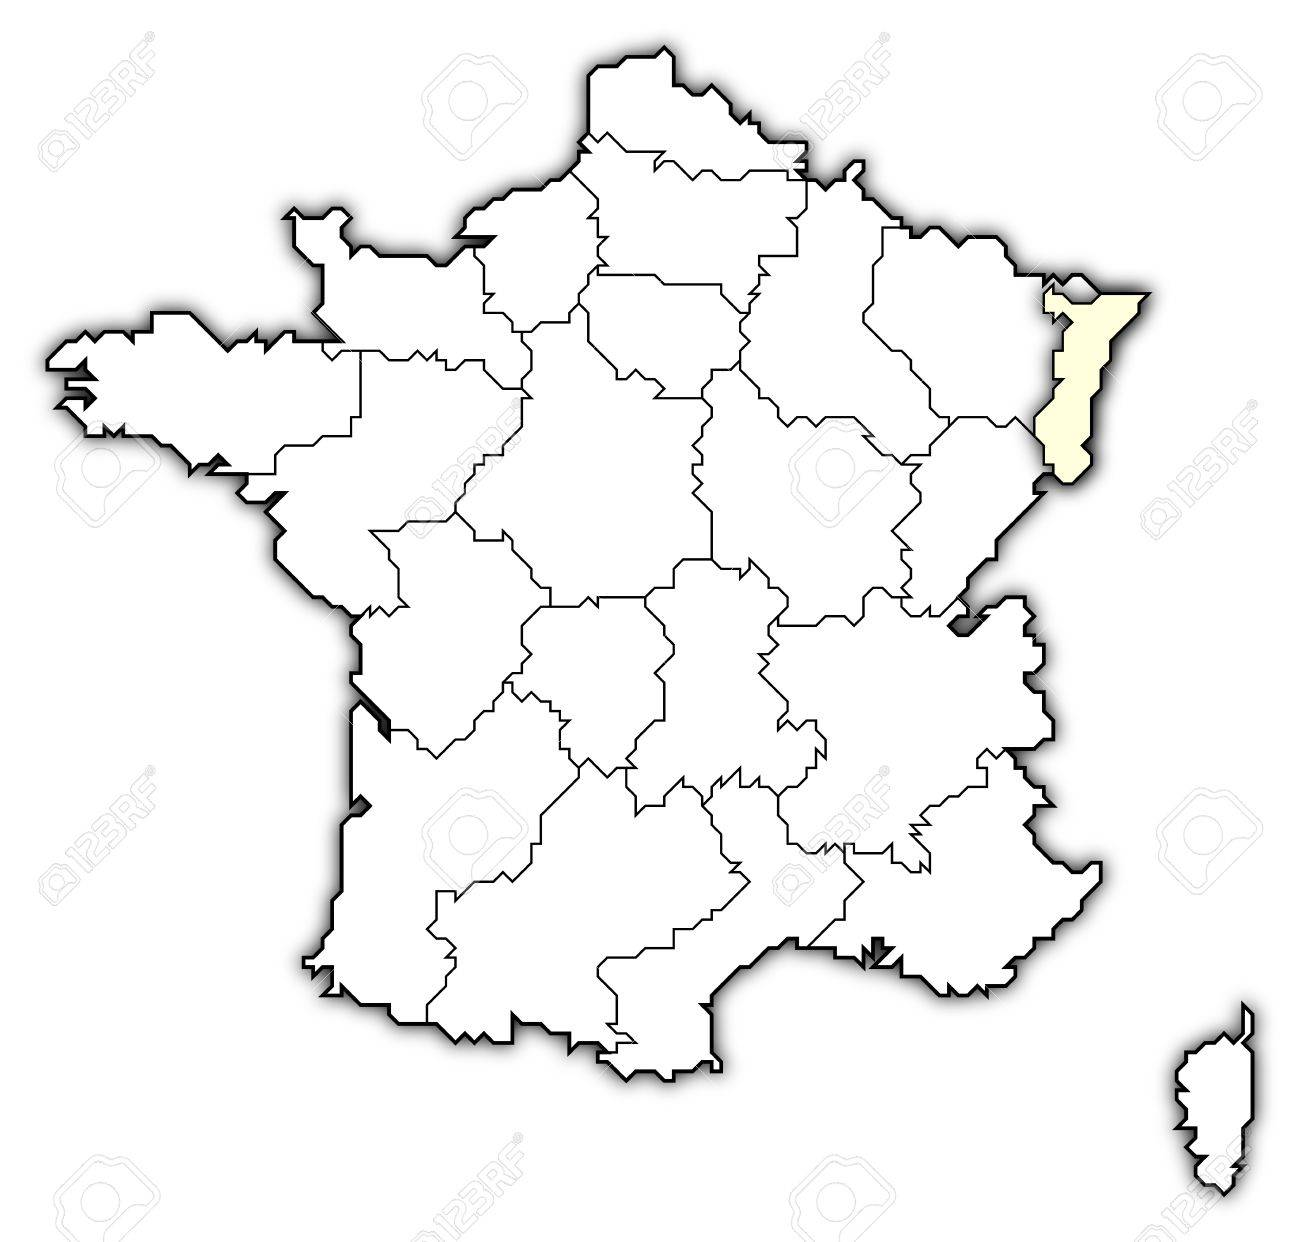 Outline Political Map Of France.Political Map Of France With The Several Regions Where Alsace